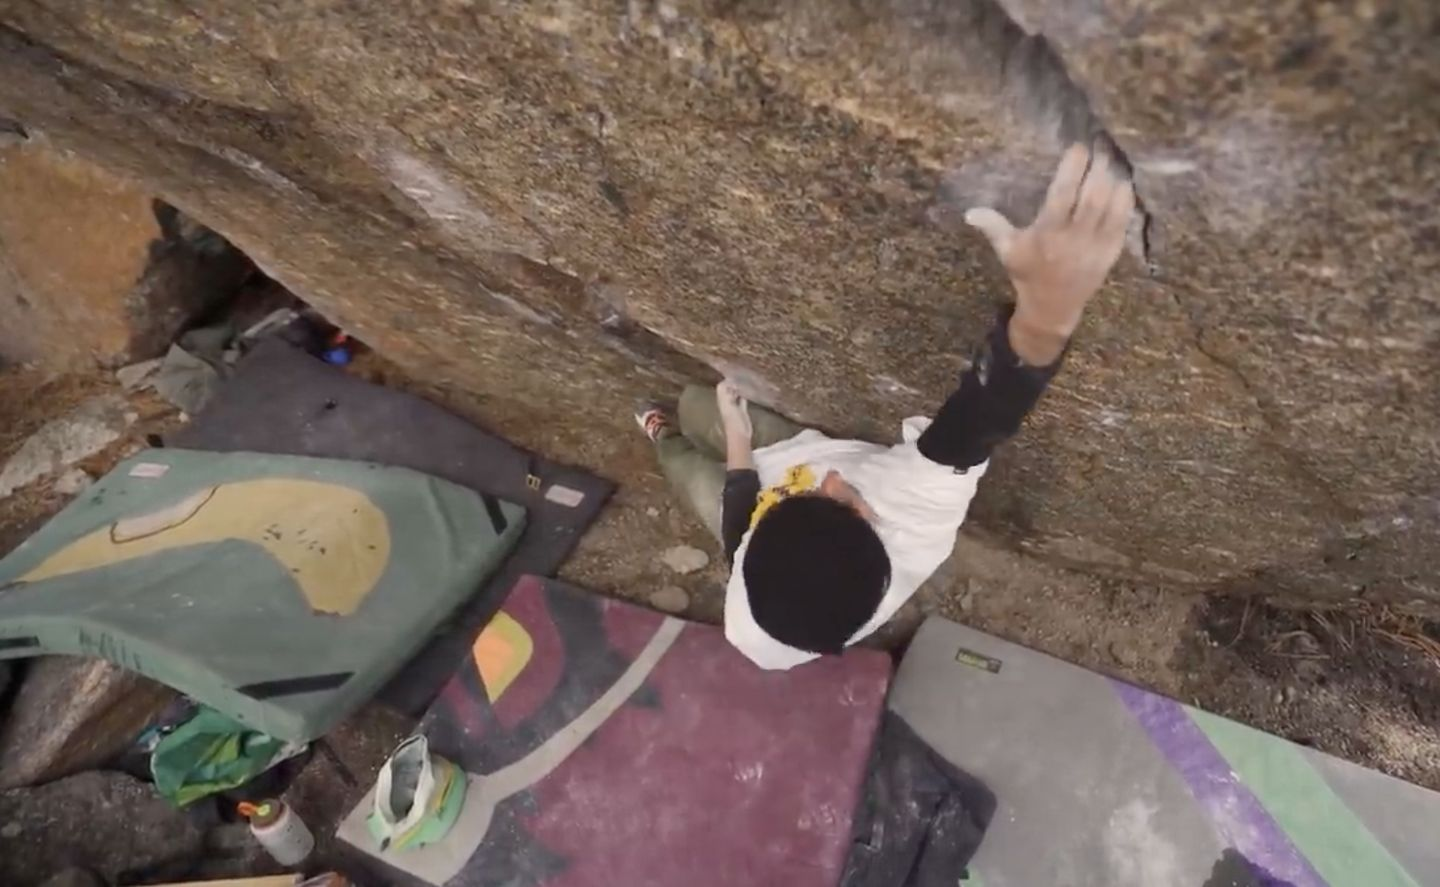 shawn raboutou first Ascent Bouldervideo